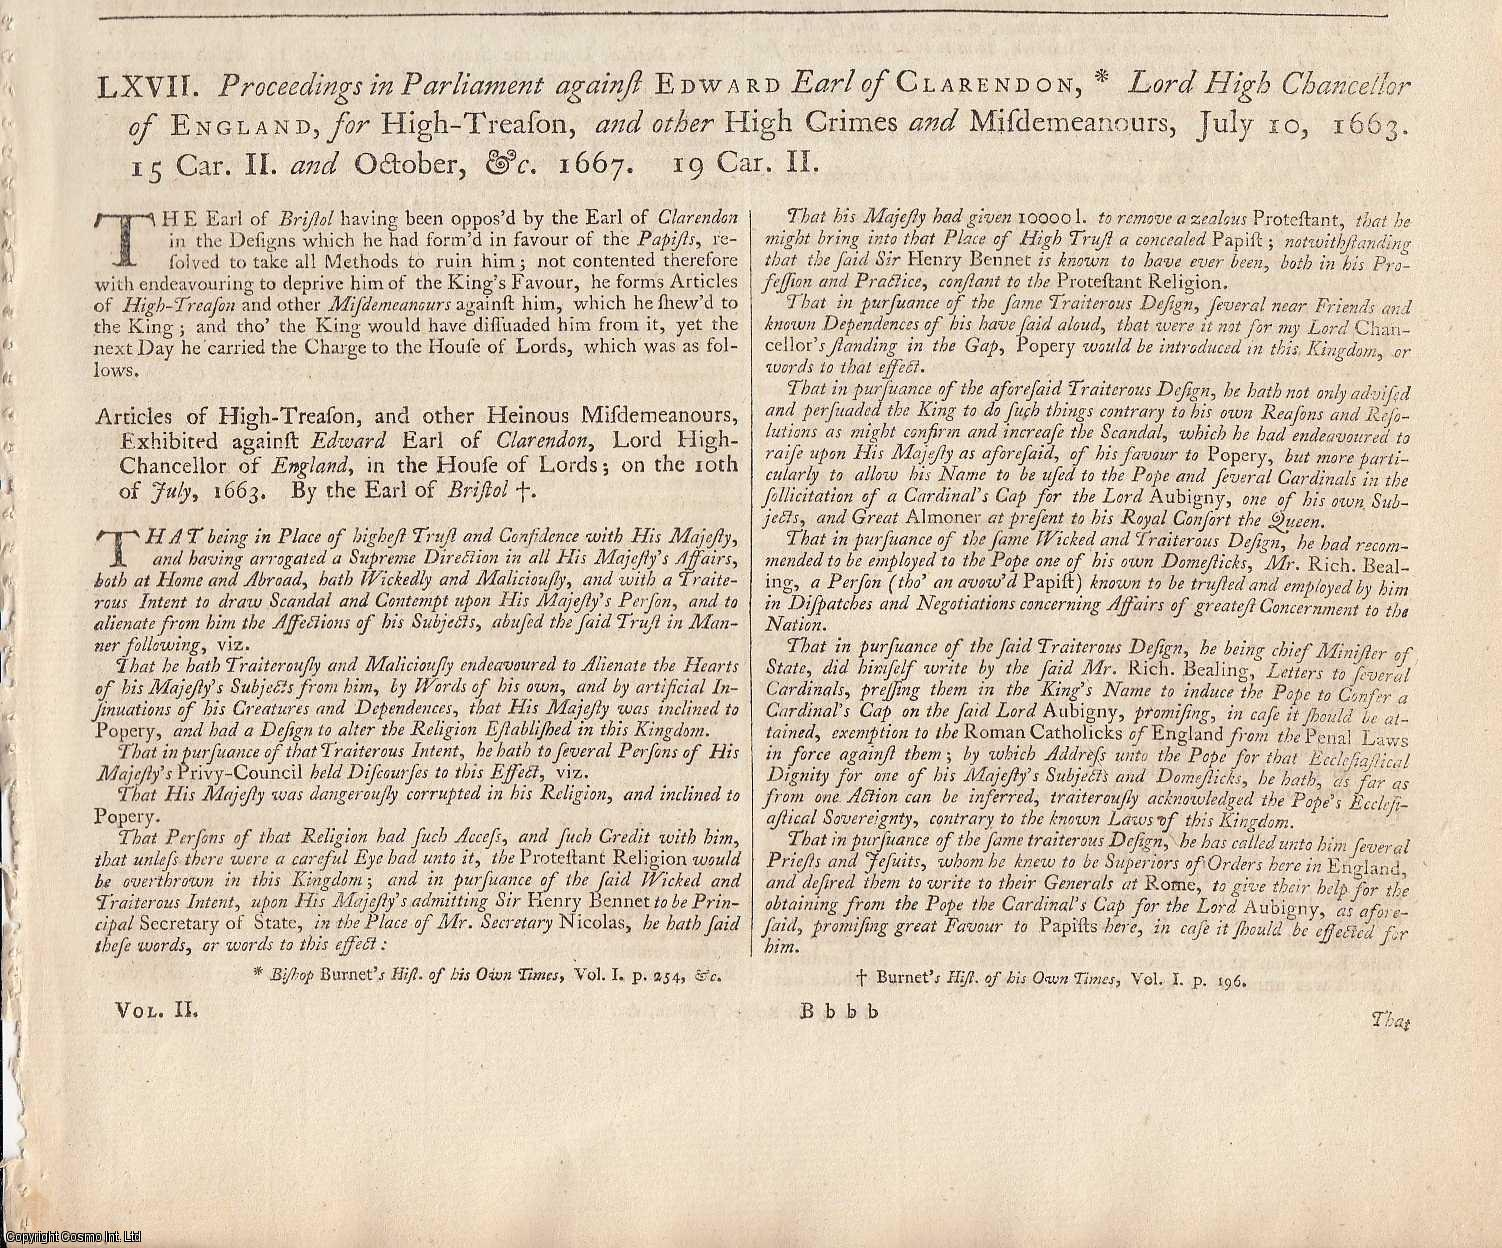 LORDS PROPRIETOR OF THE COLONY OF CAROLINA.  Proceedings in Parliament against Edward Earl of Clarendon, Lord High Chancellor of England, for High Treason, and other High Crimes and Misdemeanours, July 10, 1663 and October, &c., 1667., [Trial].